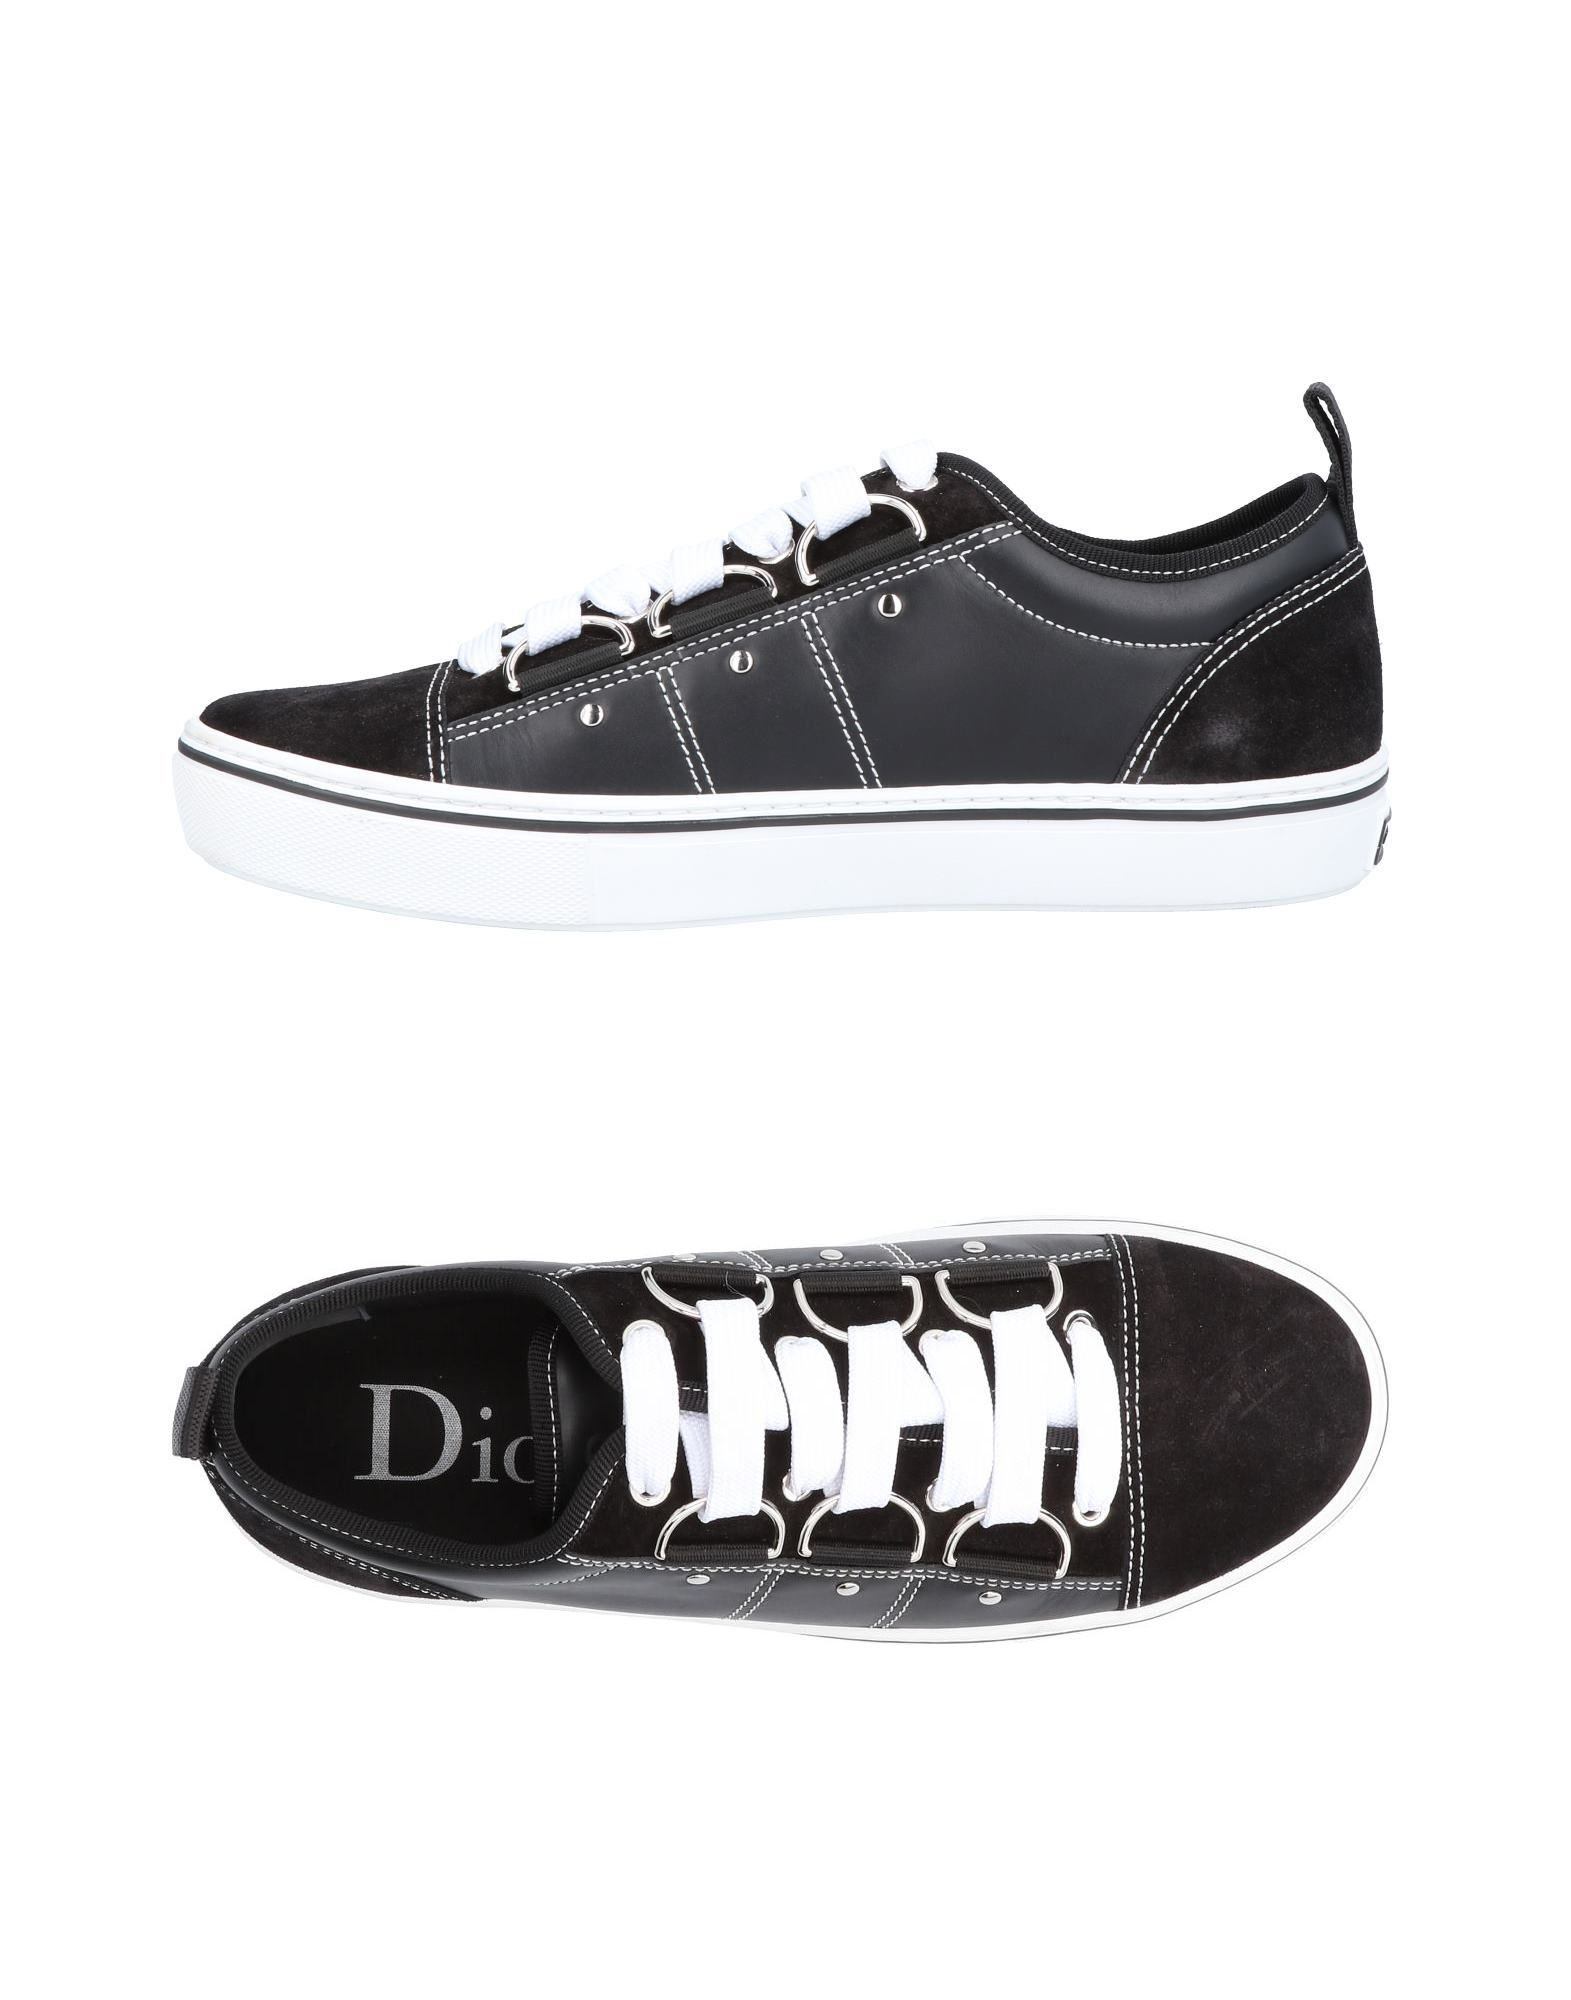 Baskets Dior Homme Homme - Baskets Dior Homme  Noir Confortable et belle